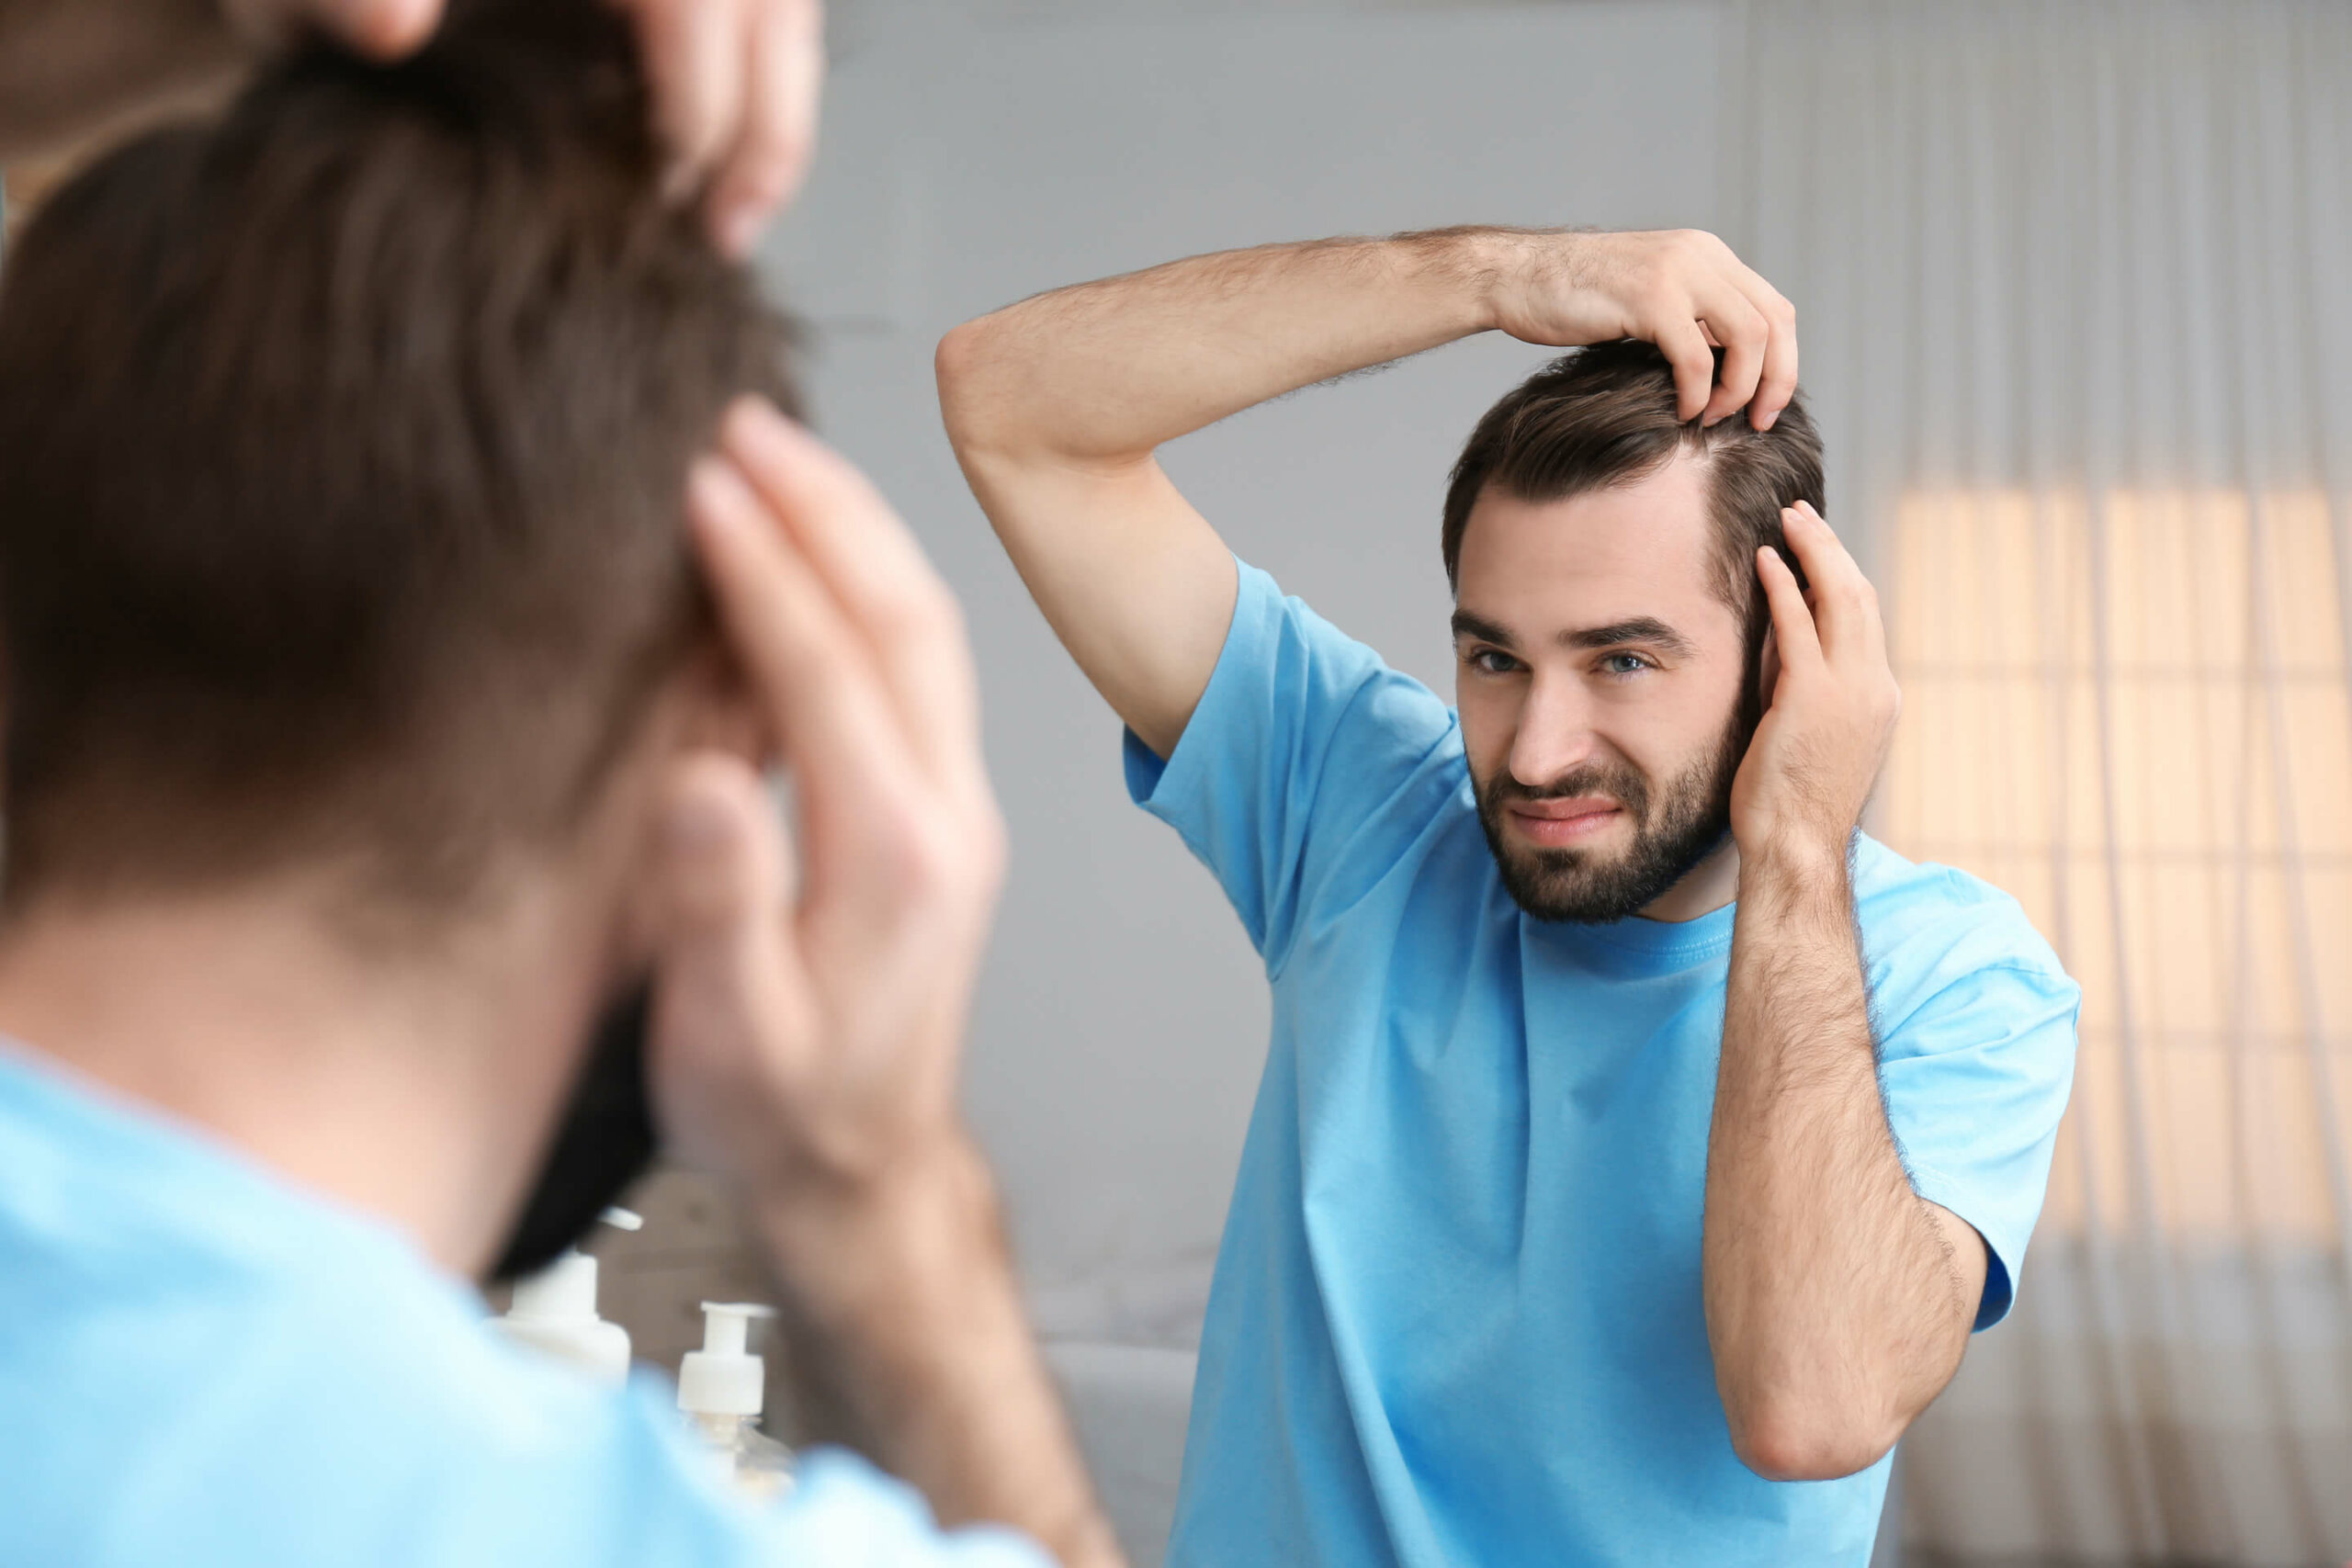 A man in a t-shirt inspecting his temples in the mirror, looking for signs of hair loss